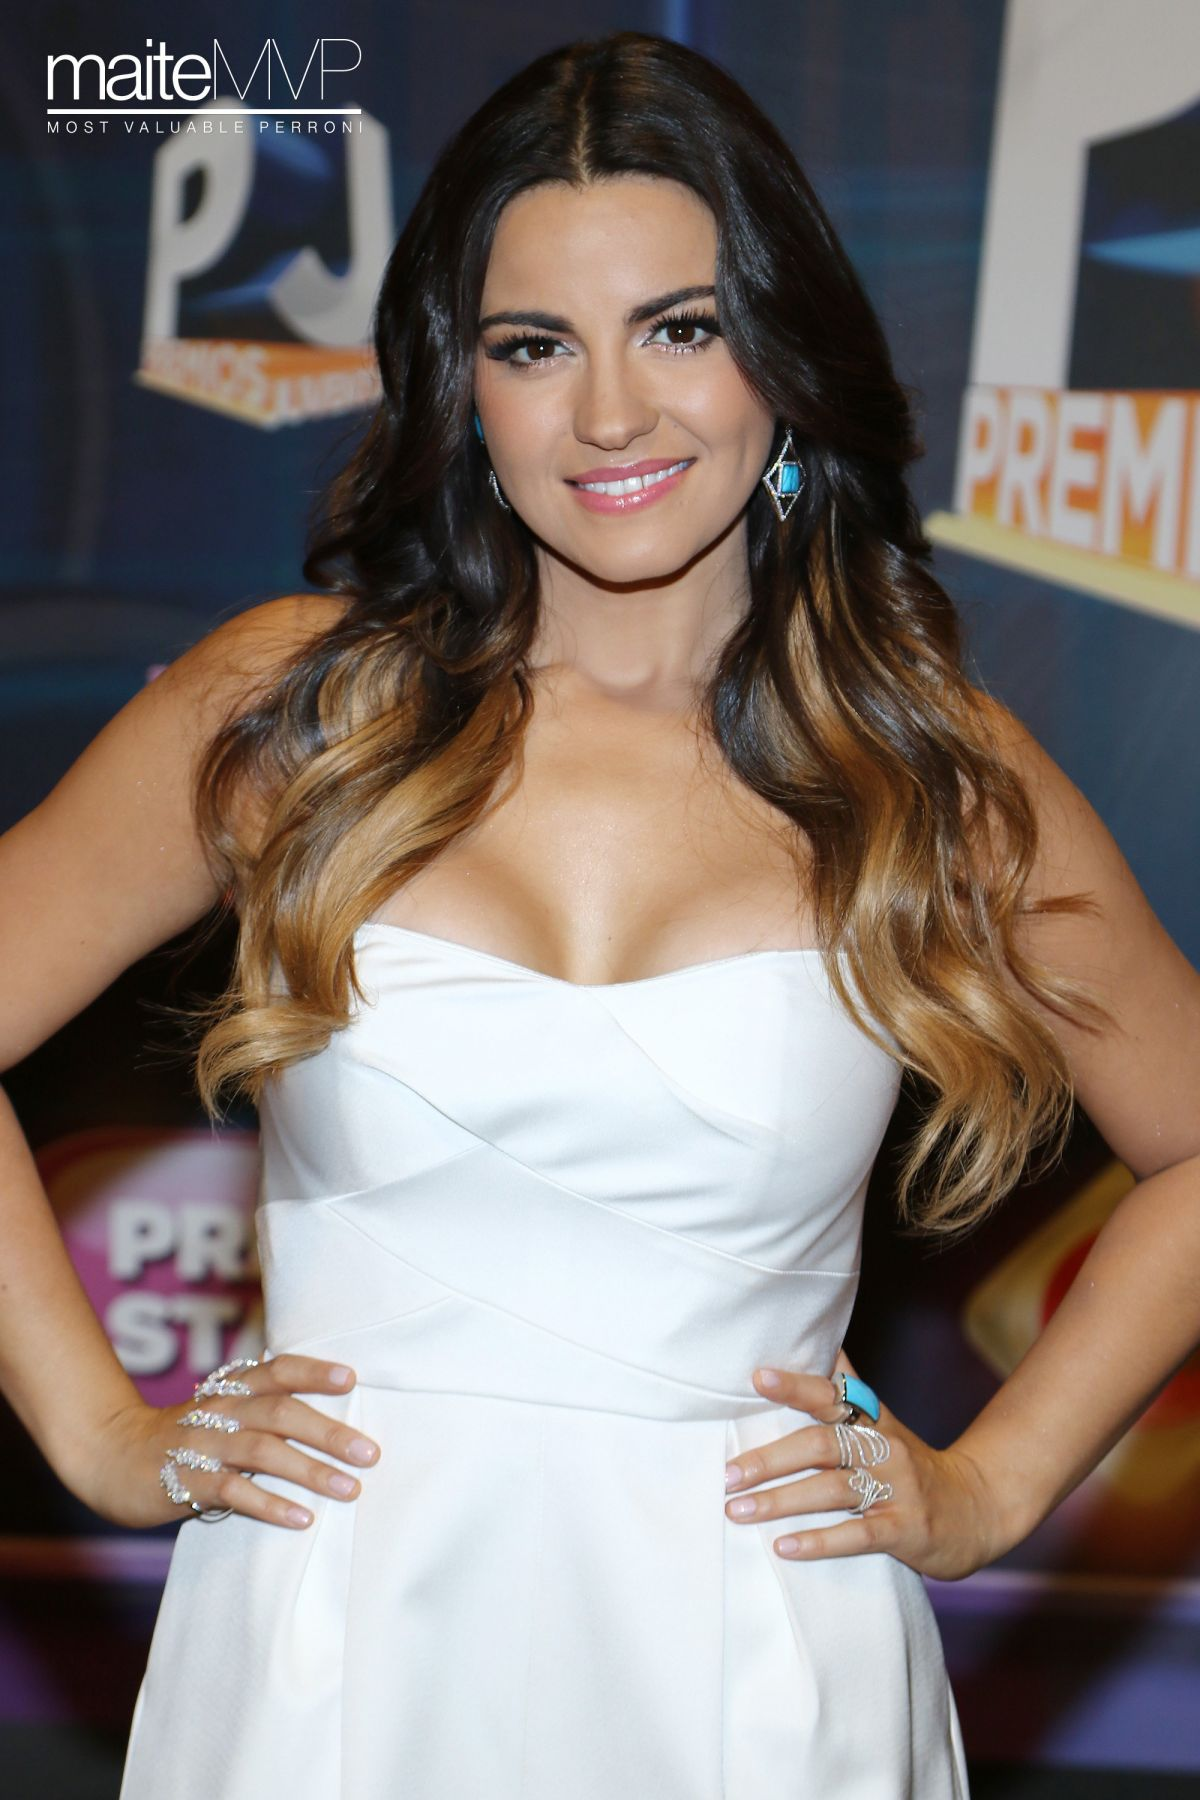 Maite Perroni with a weight of 50 kg and a feet size of 6.5 in favorite outfit & clothing style